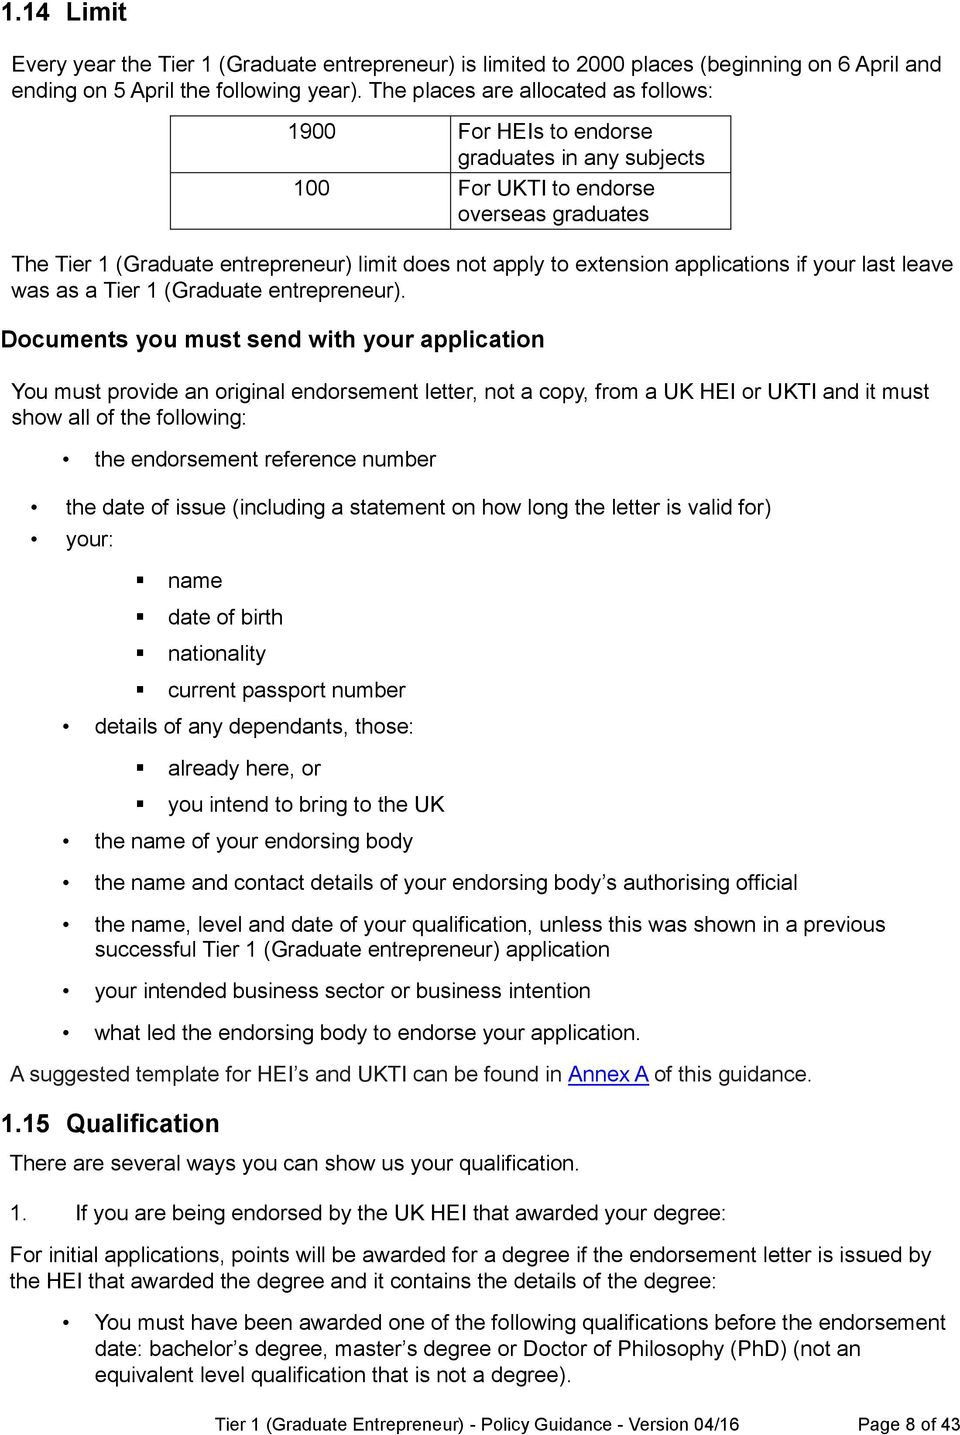 applications if your last leave was as a Tier 1 (Graduate entrepreneur).